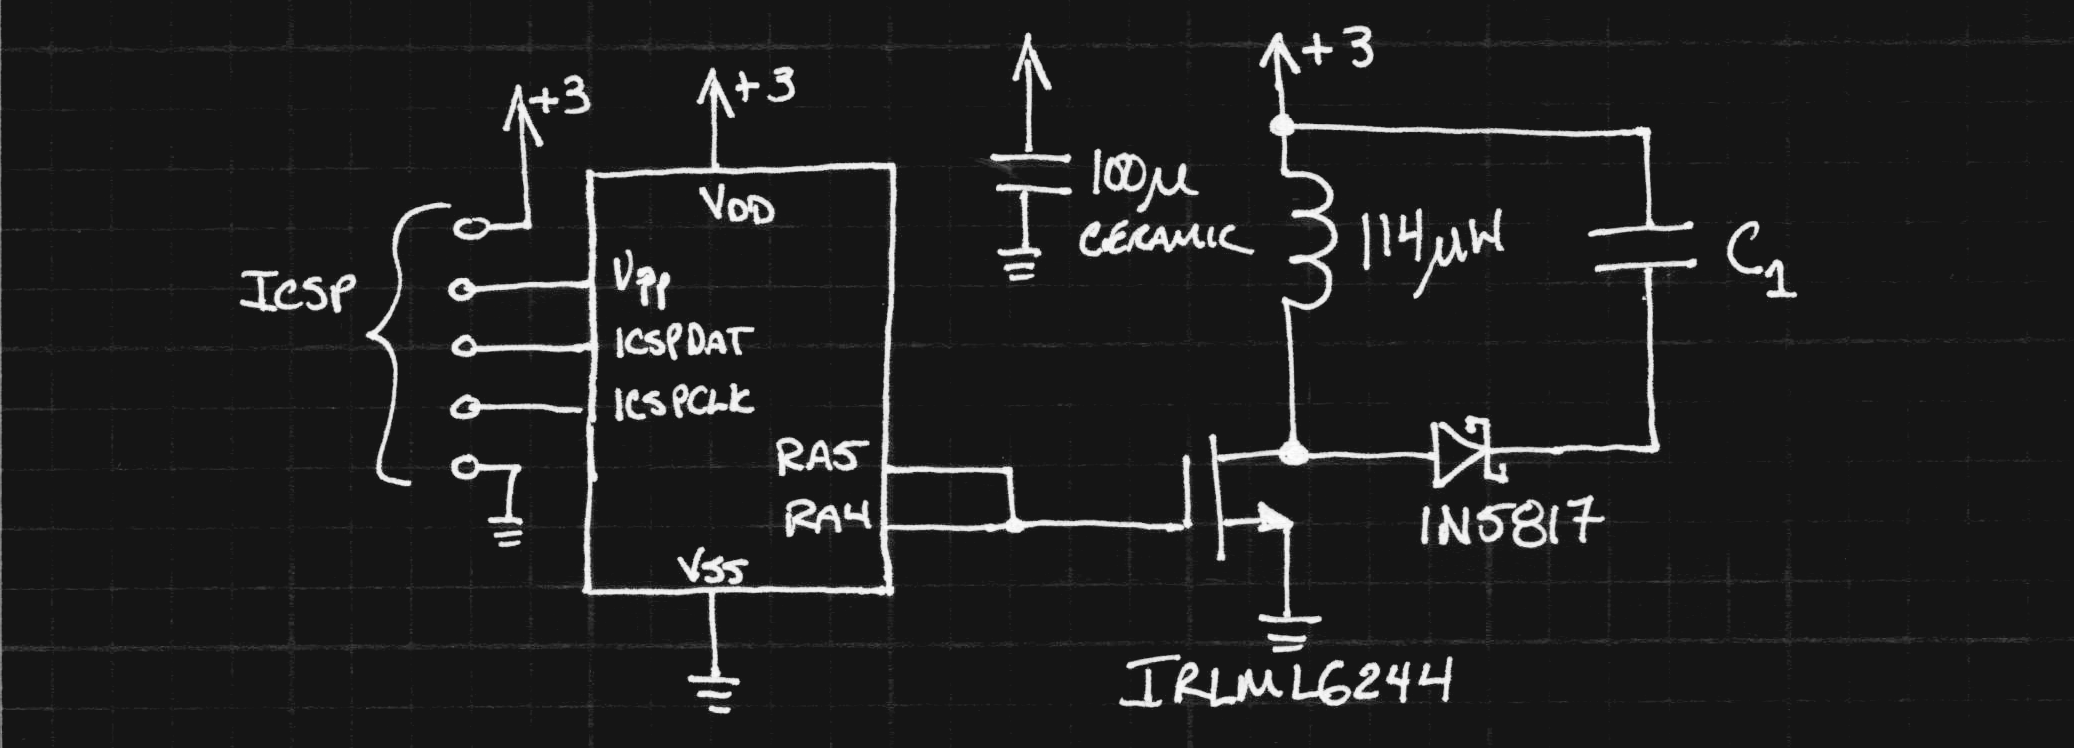 First Prototype Dc Converter Details Simple Inductor Circuit The Pic Code Attached At End Of This Log Generates A 17us Pulse Every 94us To Magnetize By Switching On Mosfet